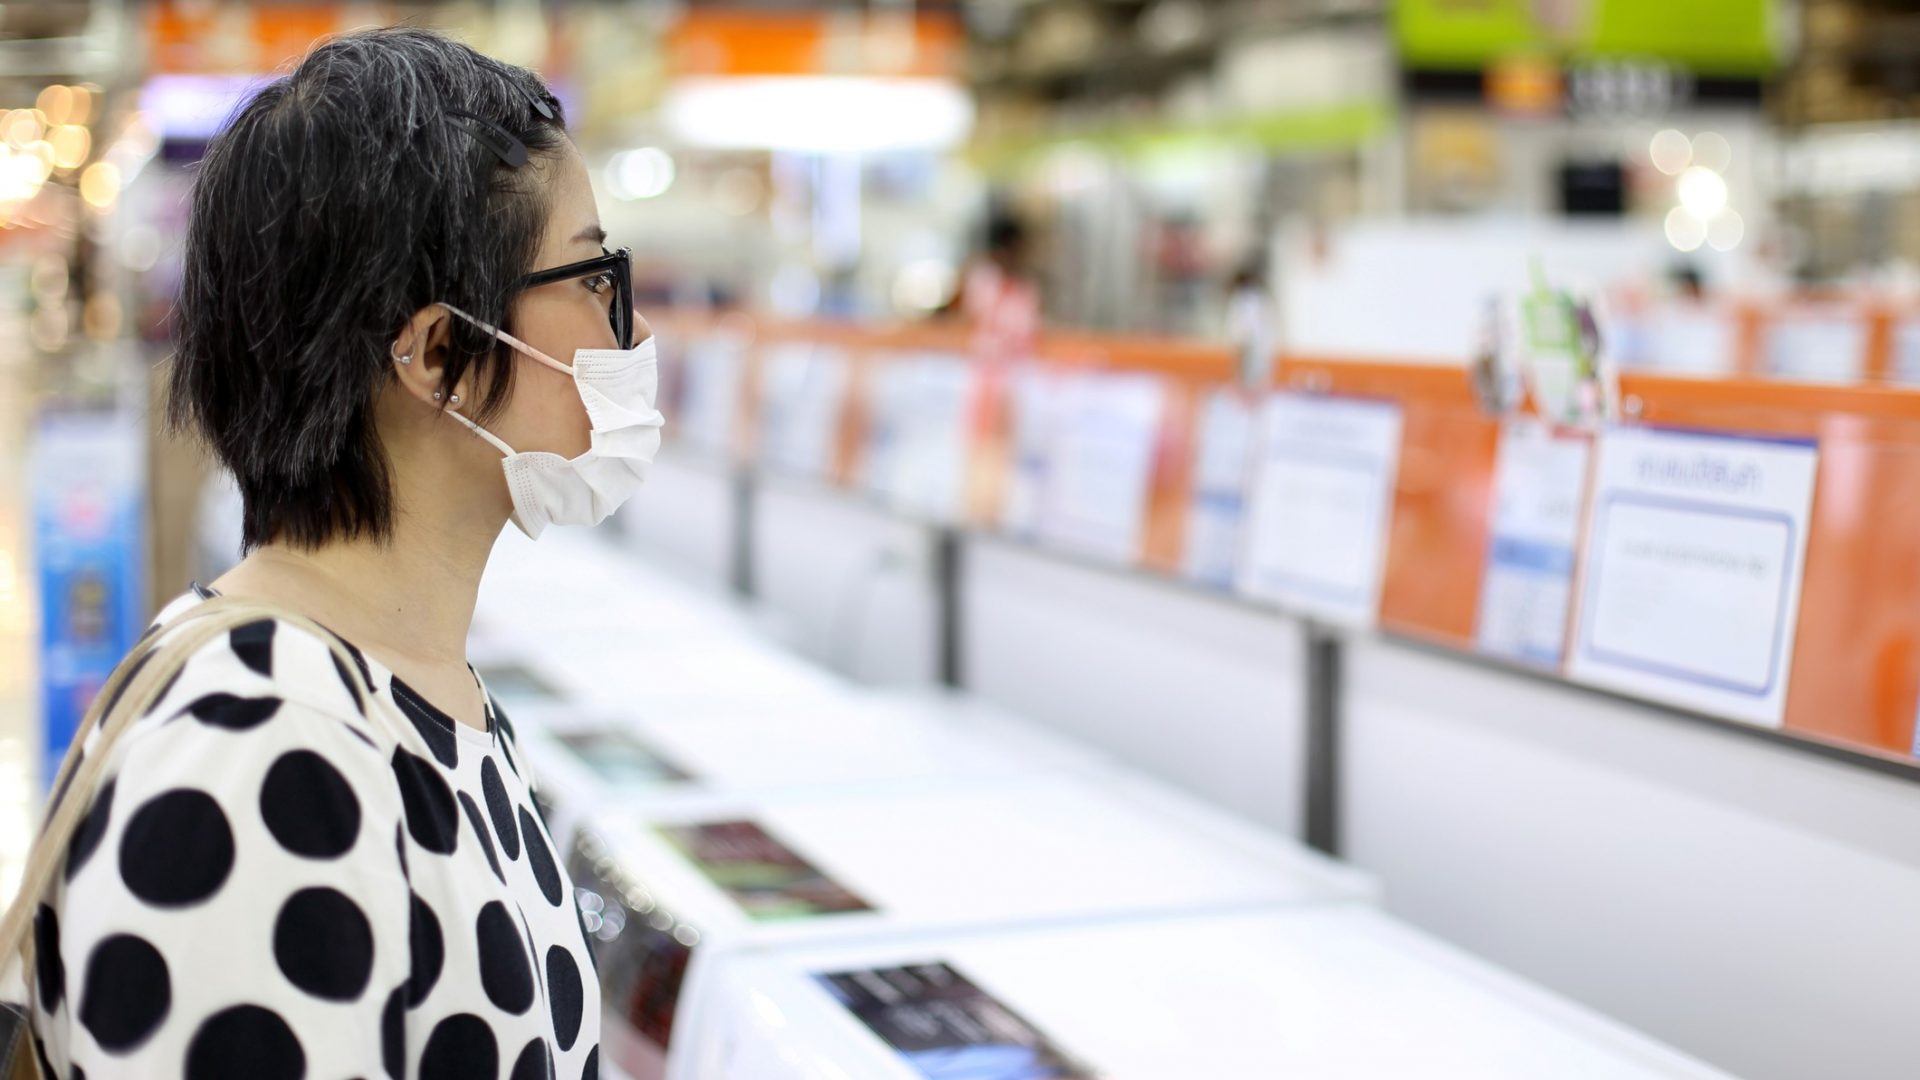 The Asian woman going shopping with face mask.